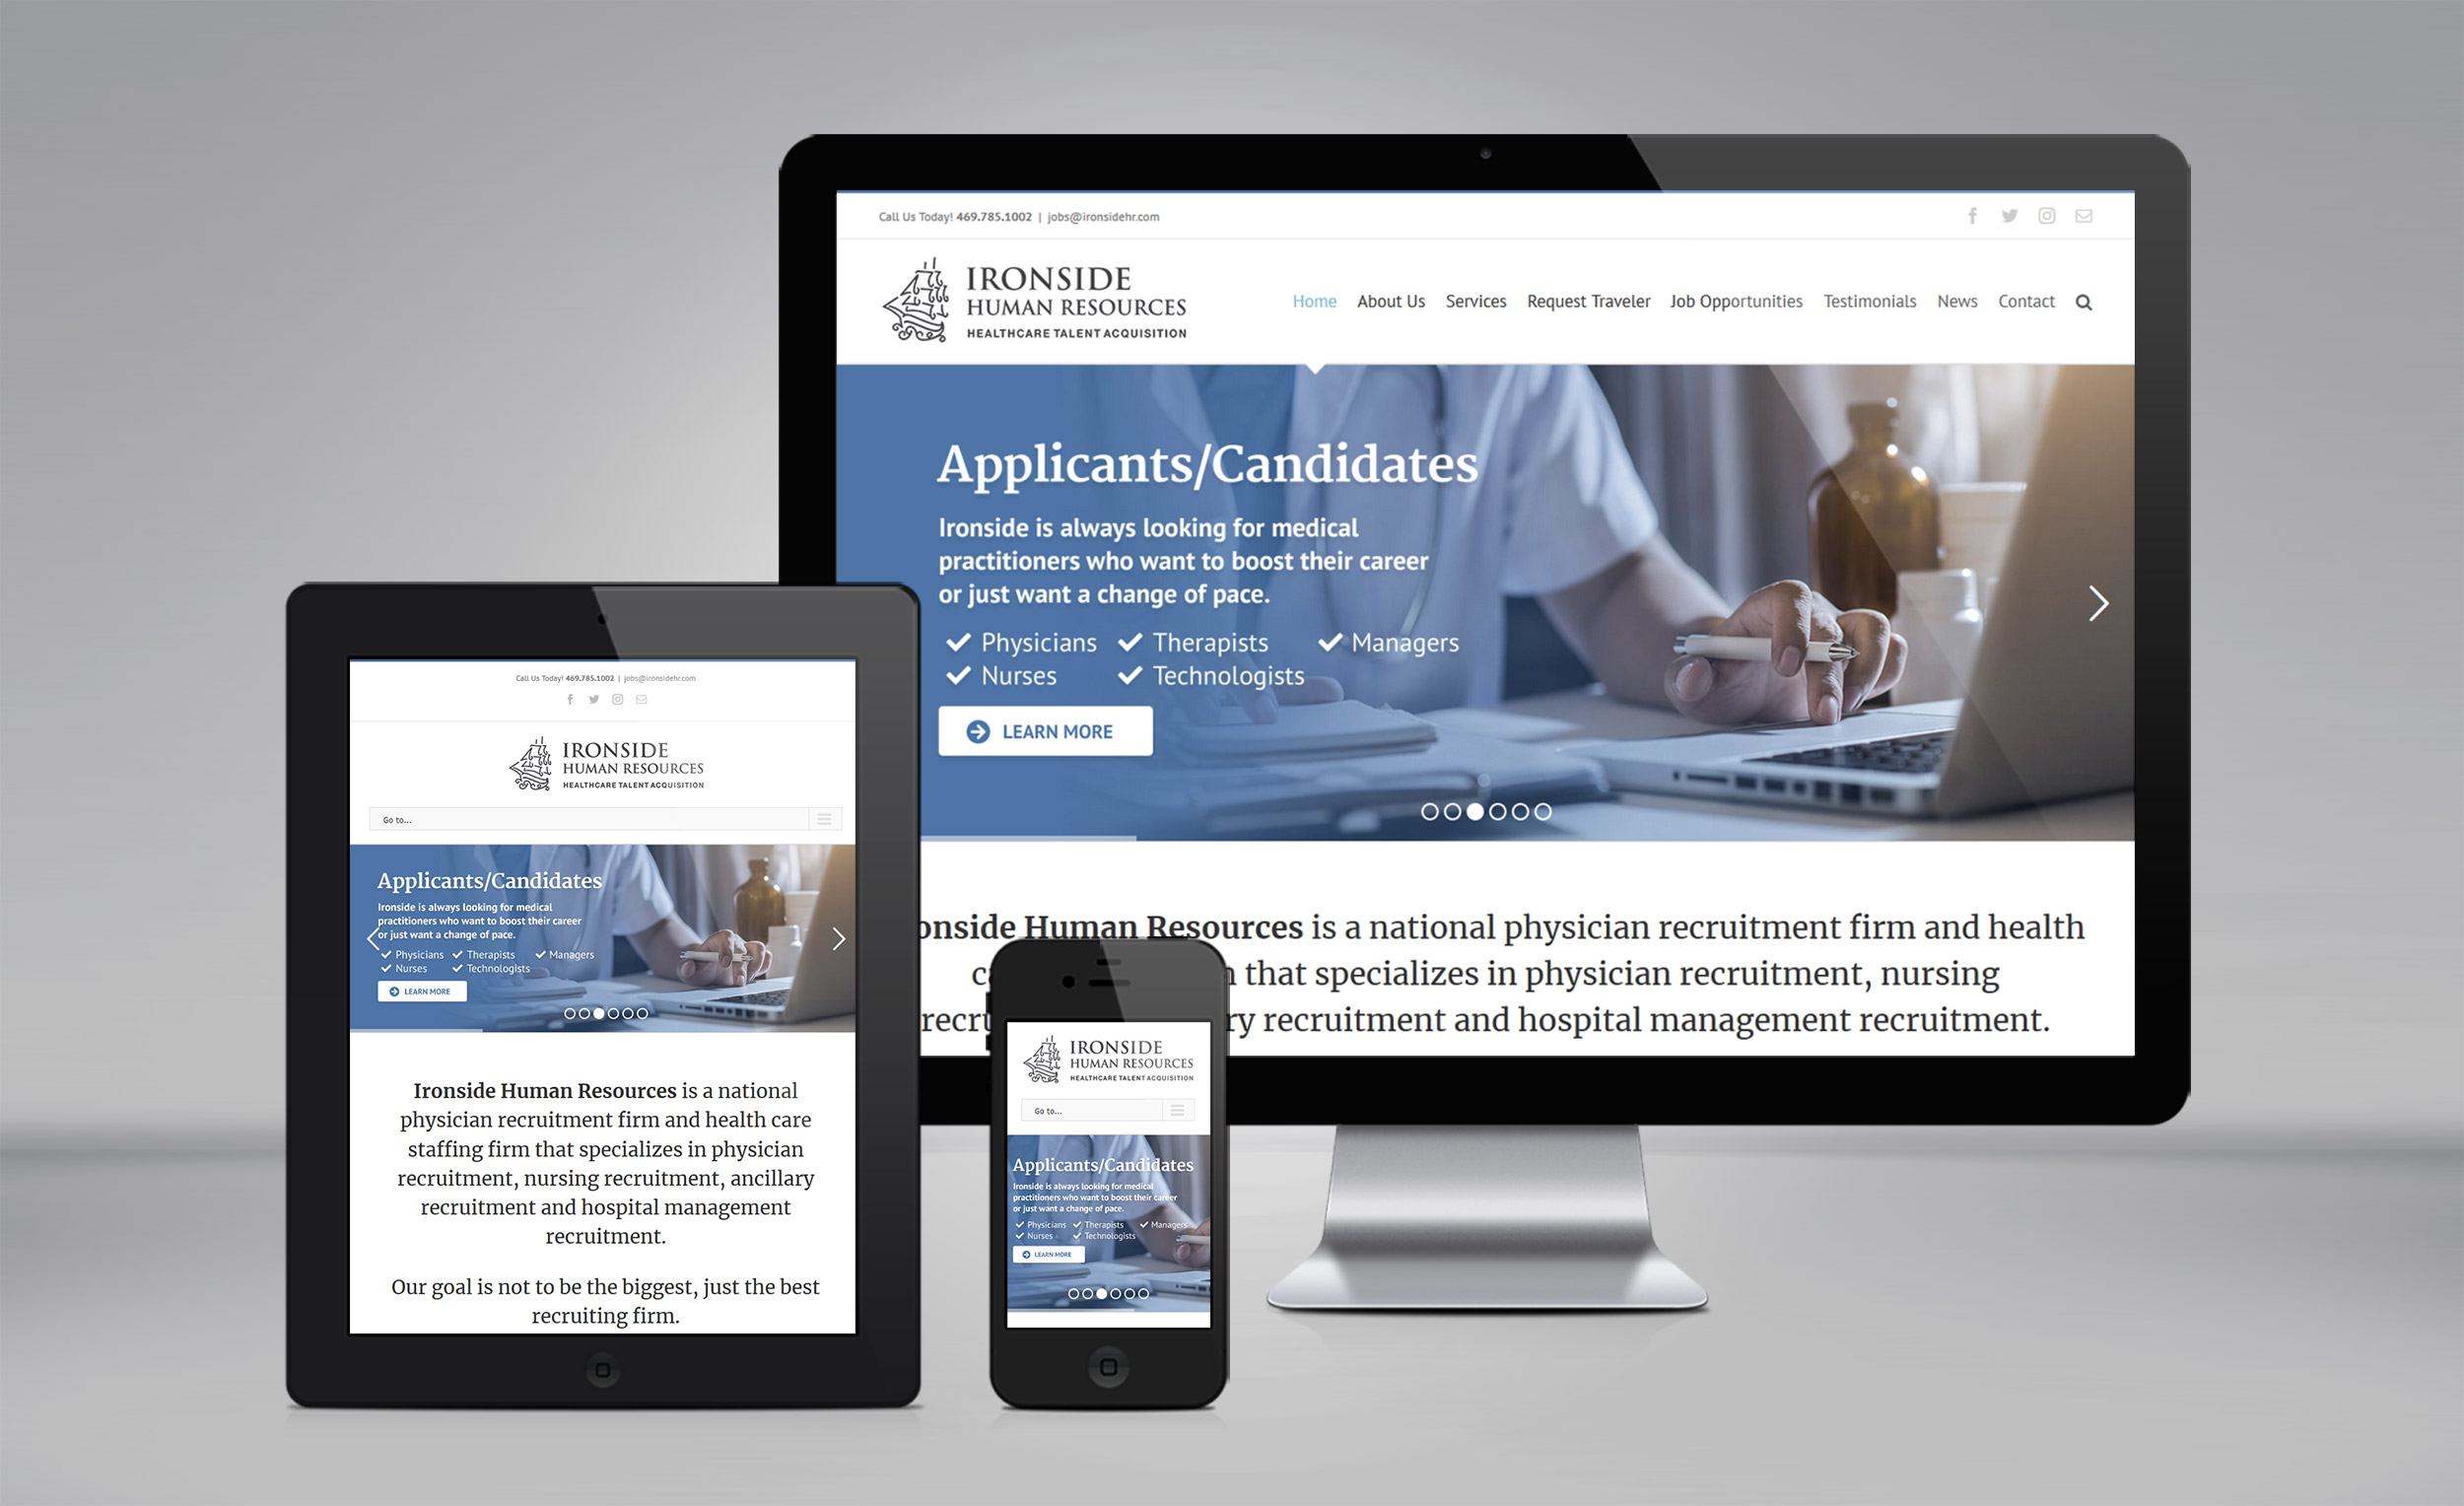 Ironside Human Resources website